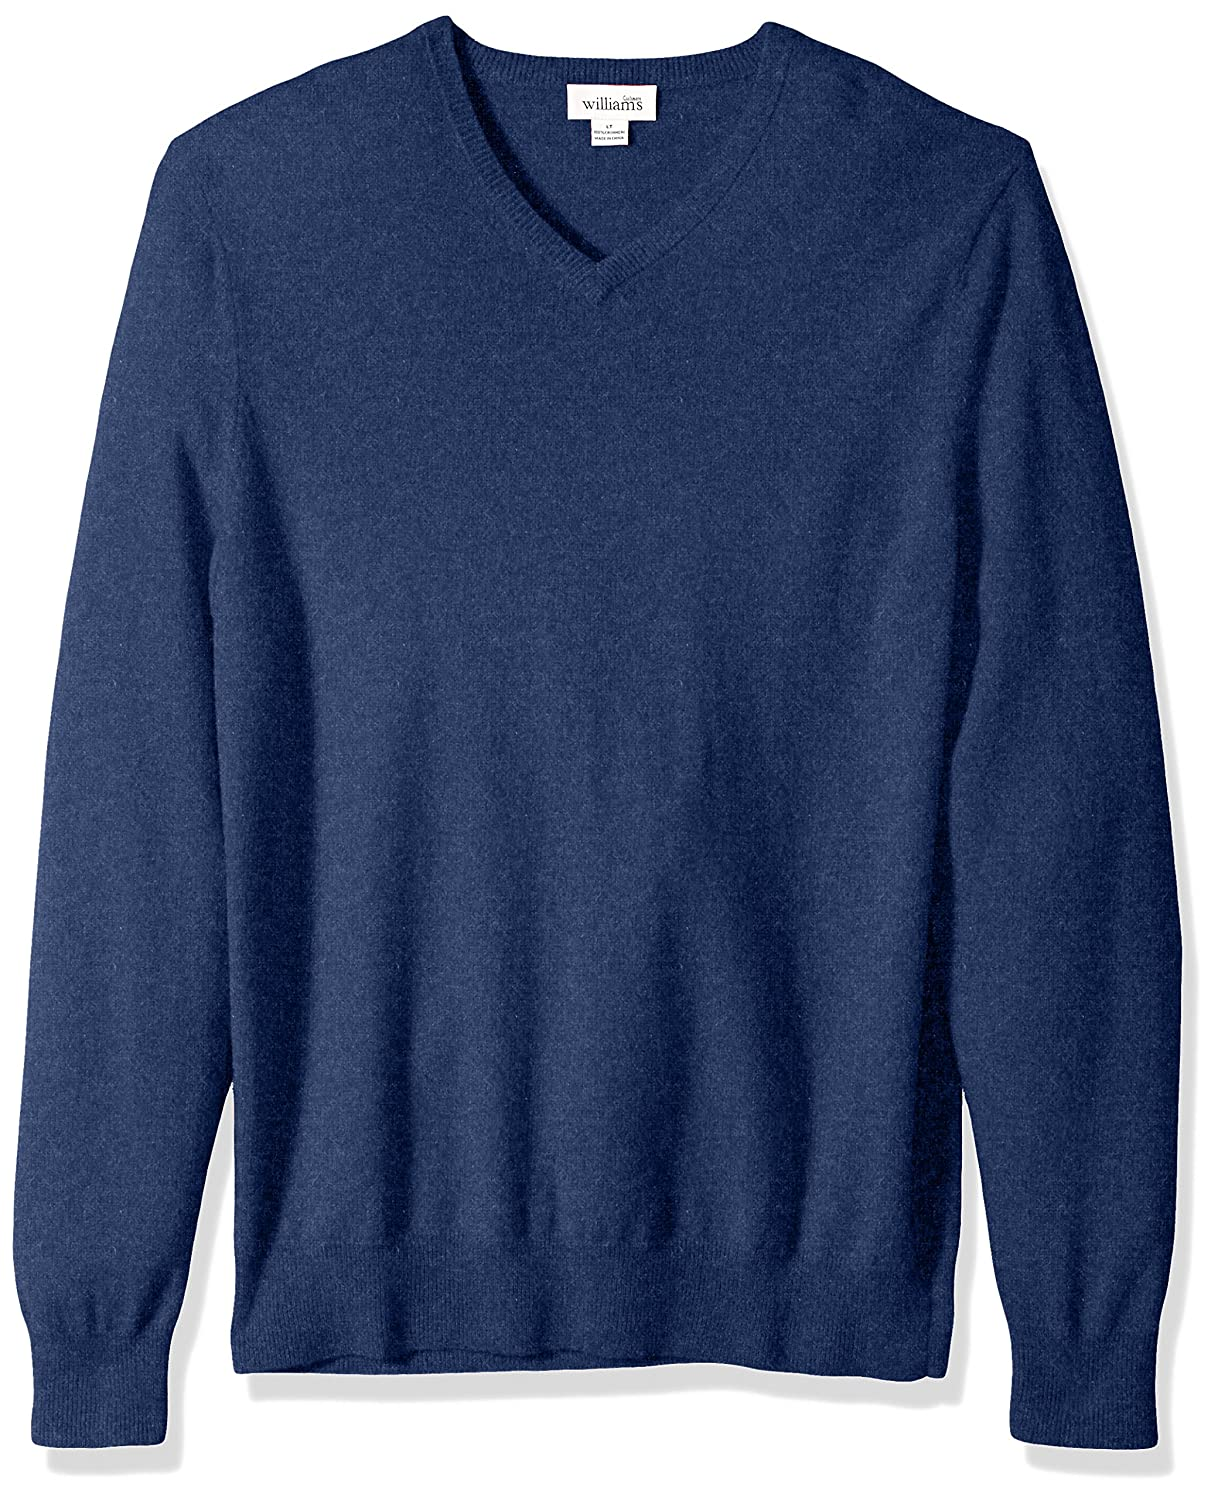 Williams Cashmere Men's 100% Big-Tall V-Neck Sweater SCM96-AM-BT